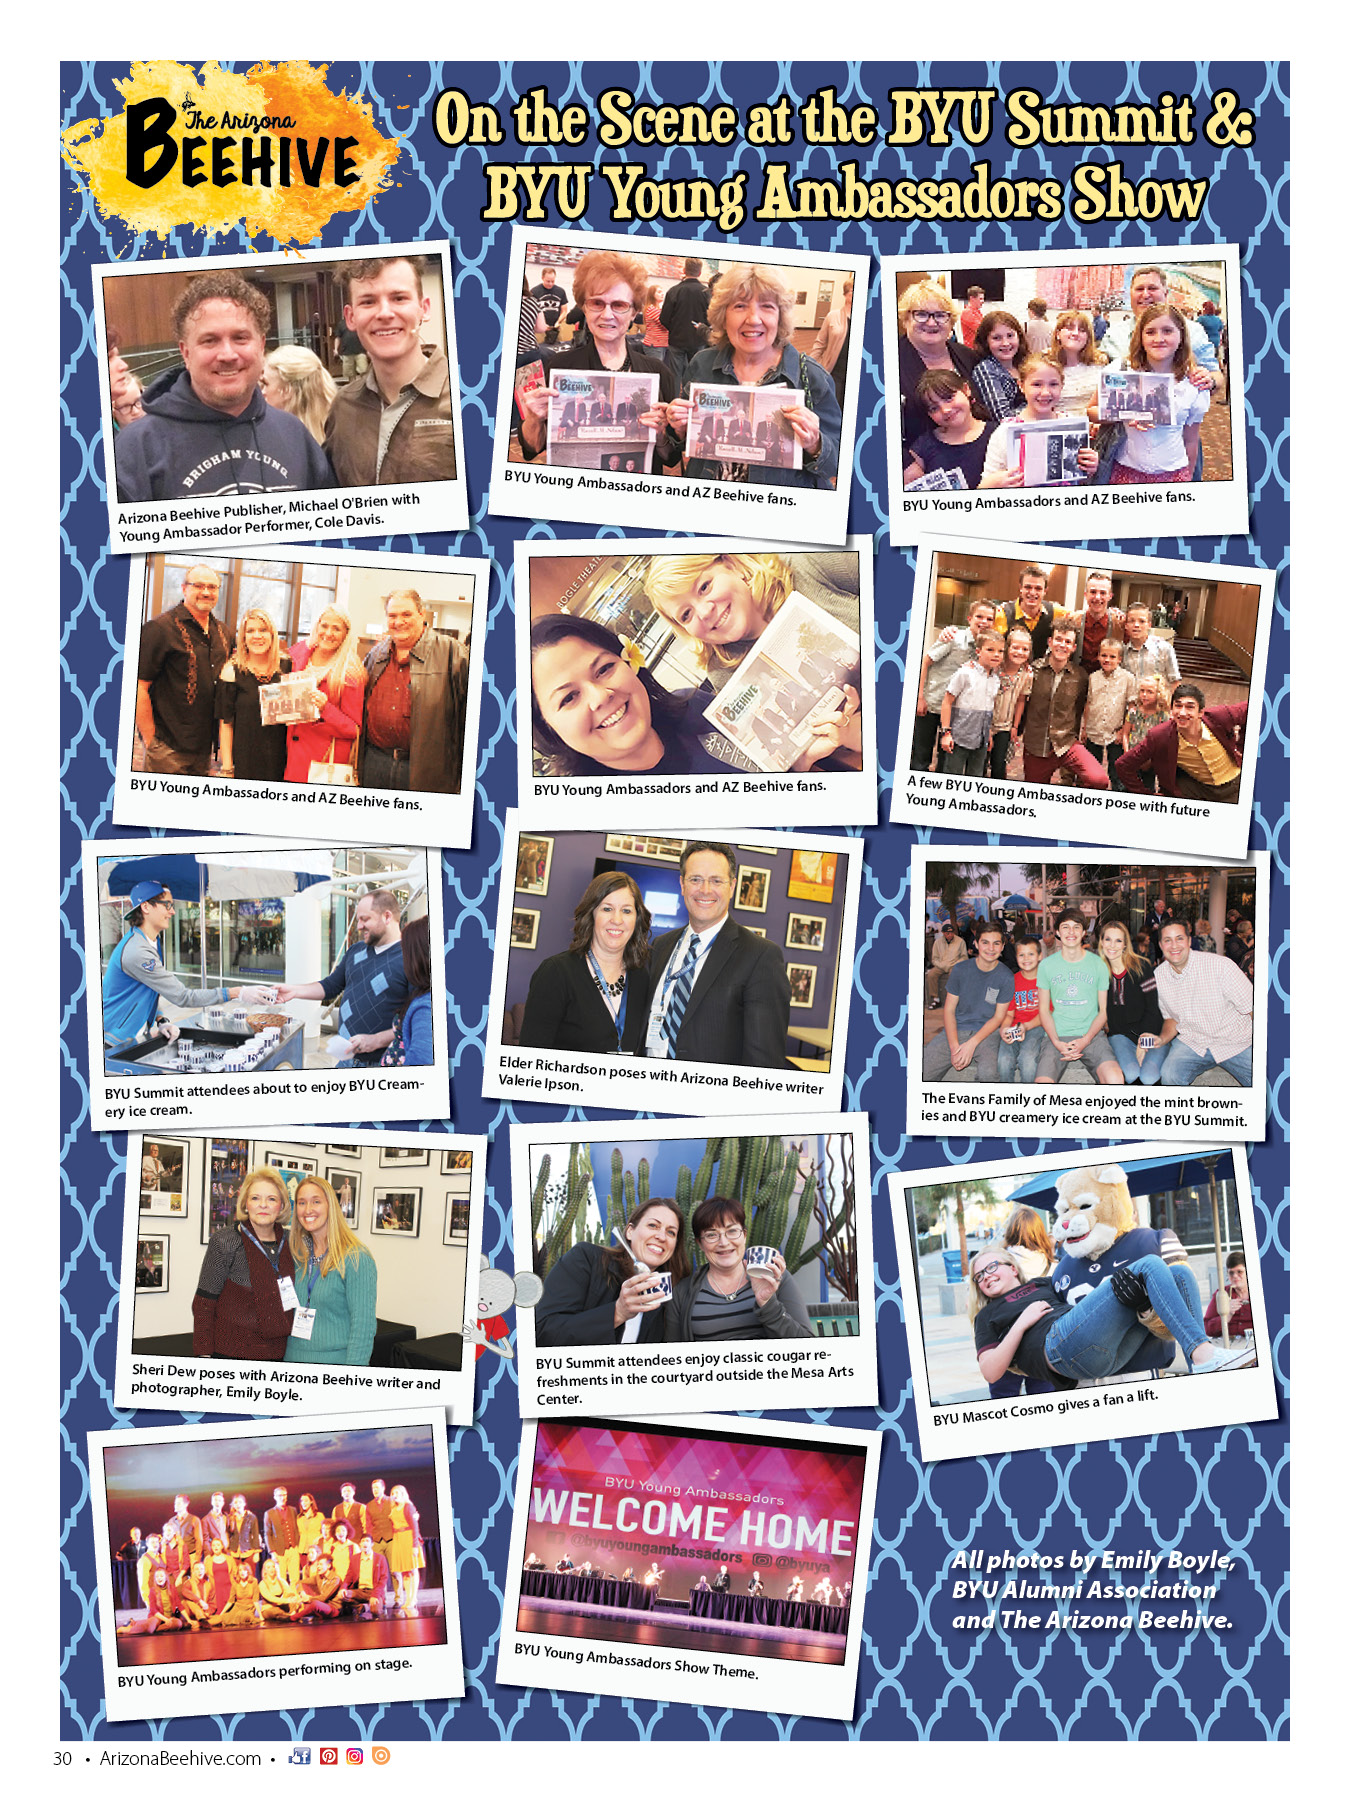 On The Scene At The BYU Summit And YA Show Pics Beehive April 2018  Page 30